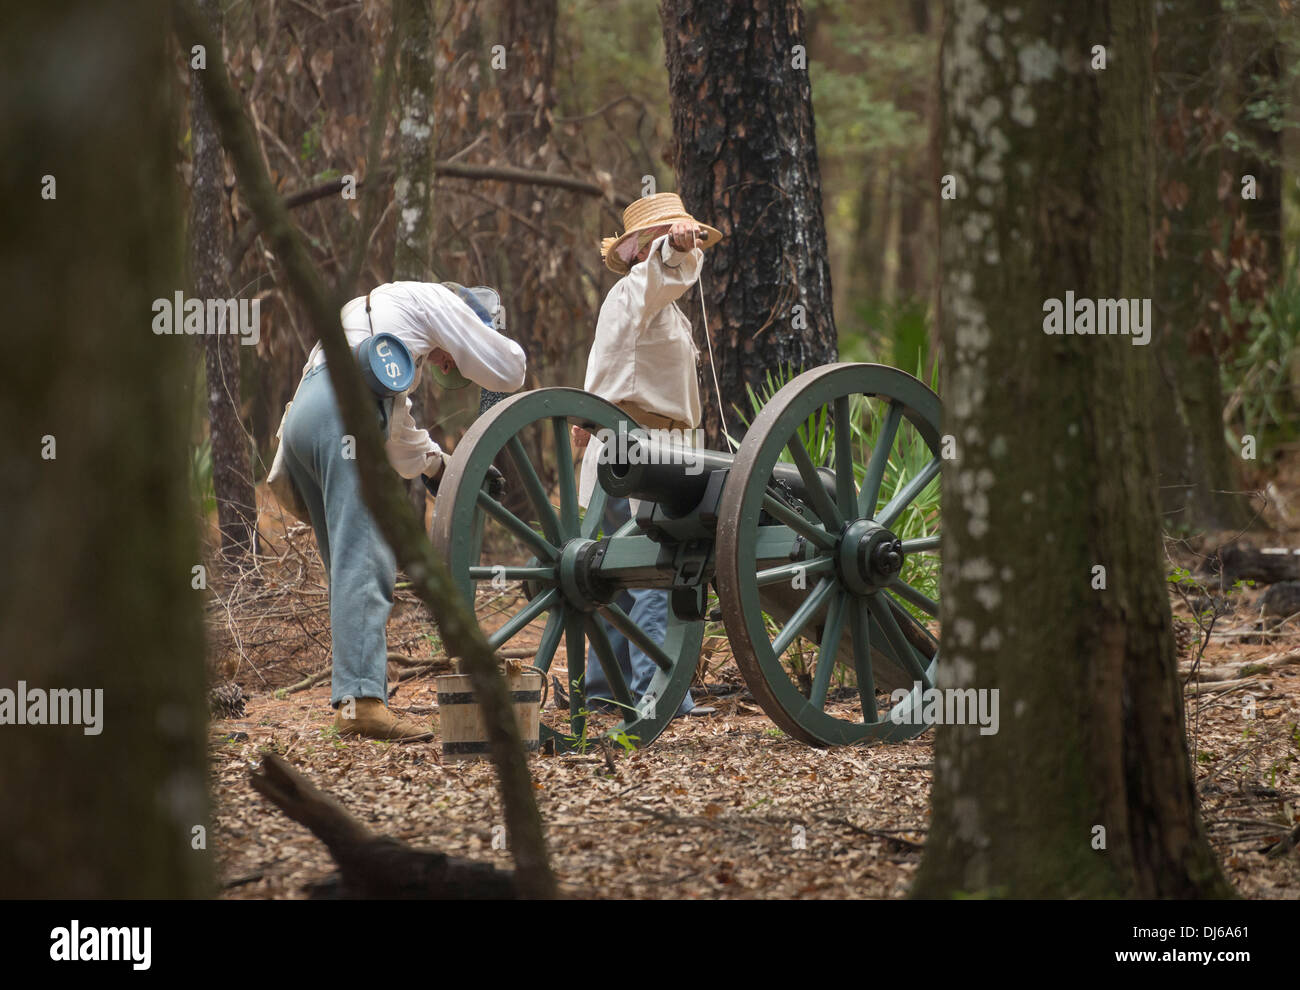 US soldiers recreating the 2nd Seminole War during Native American Festival at Oleno State Park in North Florida. - Stock Image